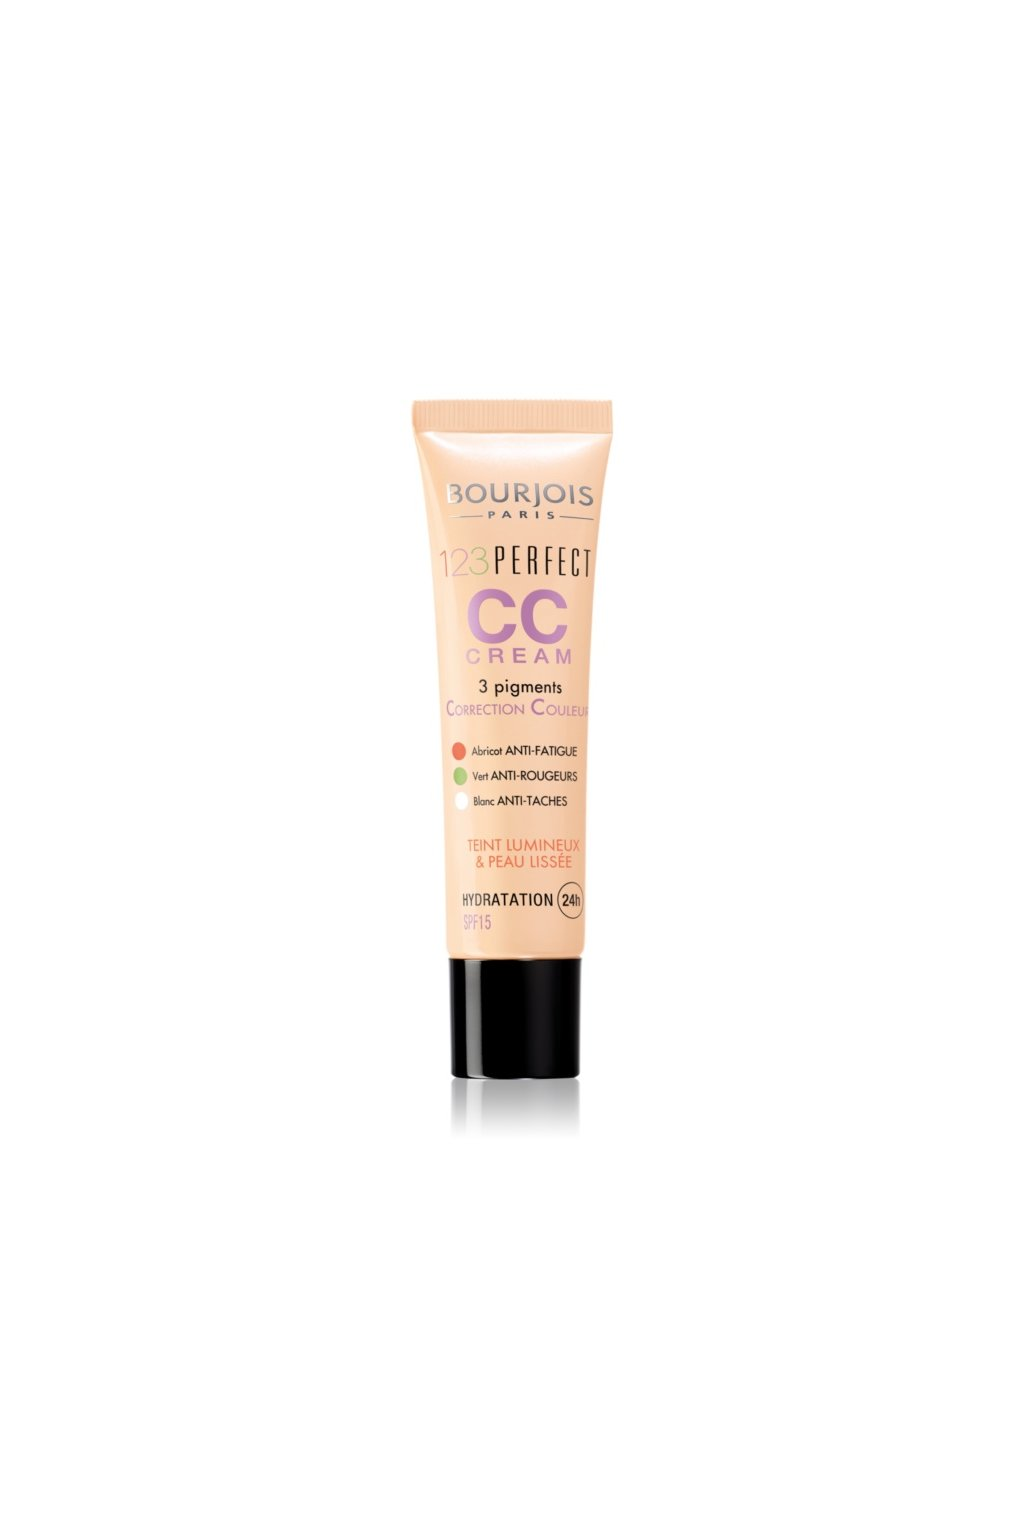 Bourjois 123 Perfect CC Cream  (Odstín Ivory SPF 15 30 ml)